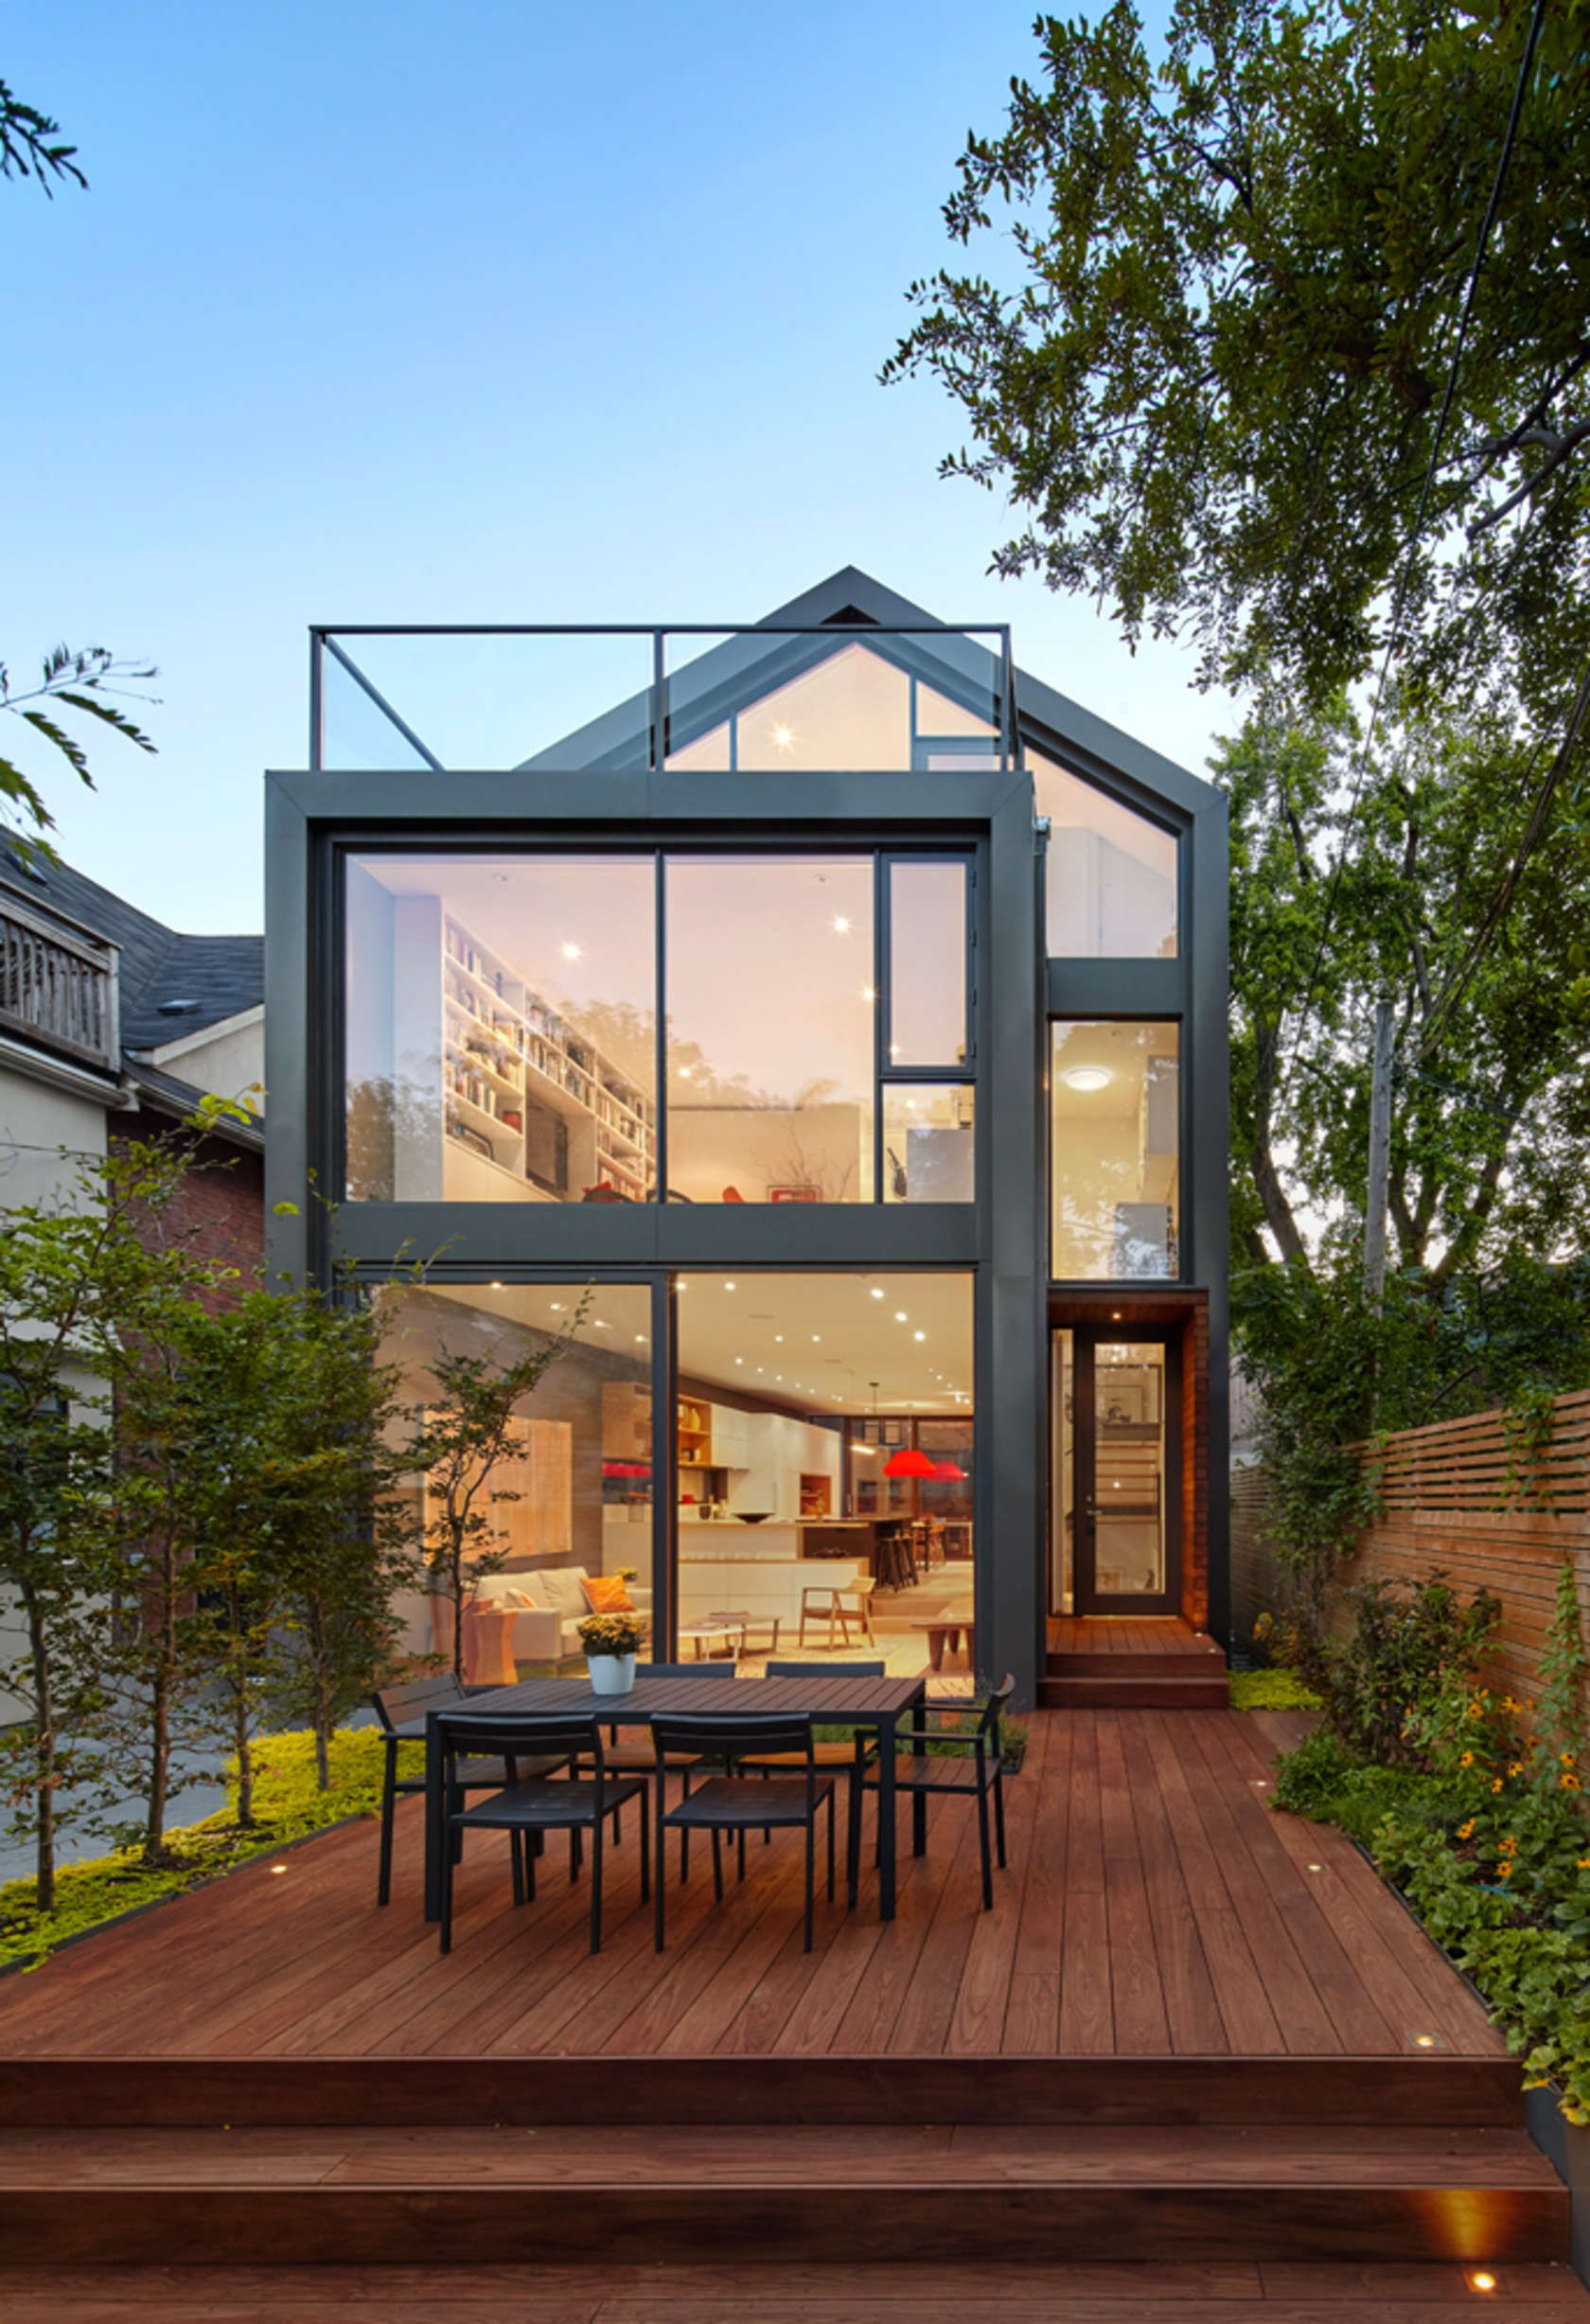 Situated On A Narrow Lot In An Older Toronto Neighborhood, The Sky Garden  House Provides Outdoor Living Spaces On Multiple Levels To Address The  Owners? ...